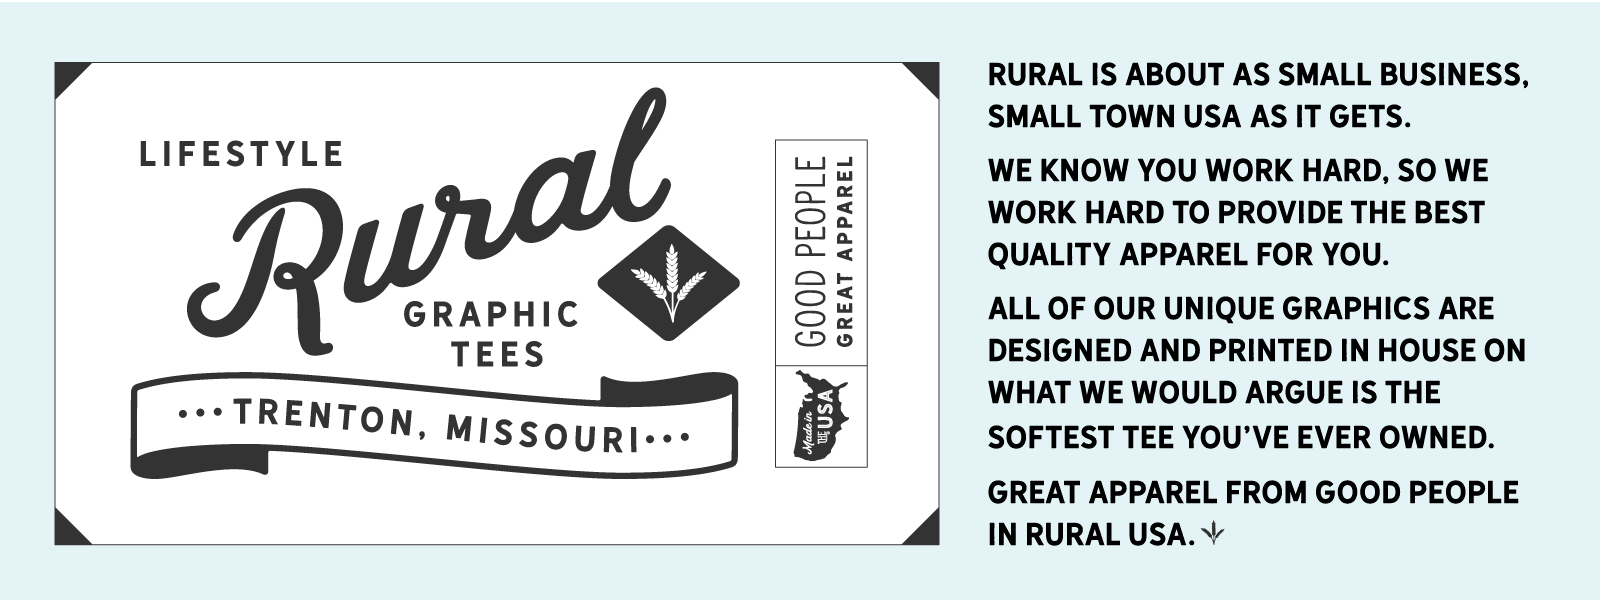 Rural graphic tees, rural graphics, rural tees, rural graphic t-shirts, rural t-shirts, Rural graphic shirts, Rural shirts, graphic tees, vintage graphic tees, country graphic tees, midwest graphic tees, missouri graphic tees, missouri boutique, kansas city boutique, kansas city graphic tees